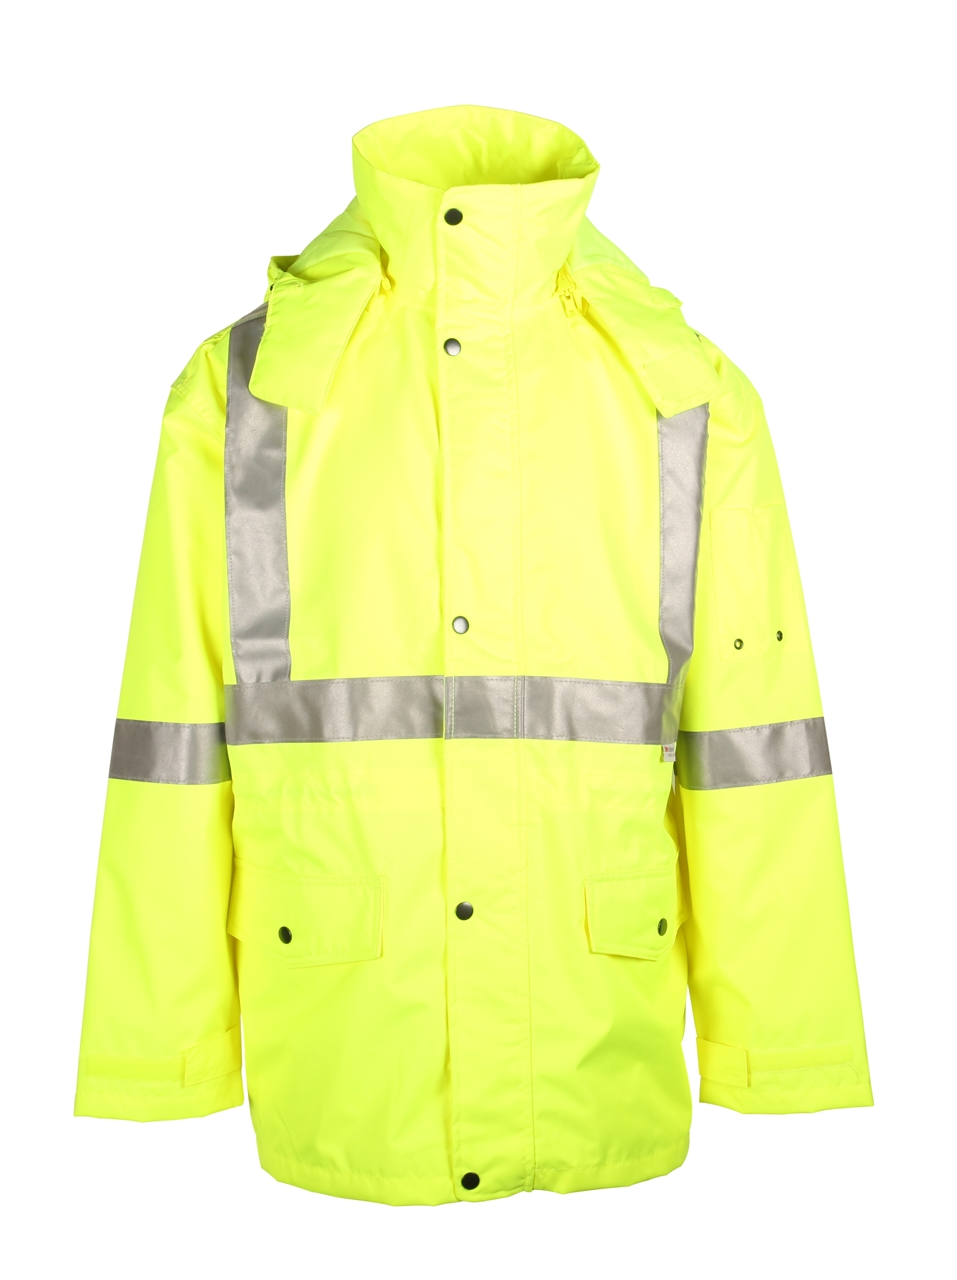 Picture of Sumaggo High Visibility Rain Jacket